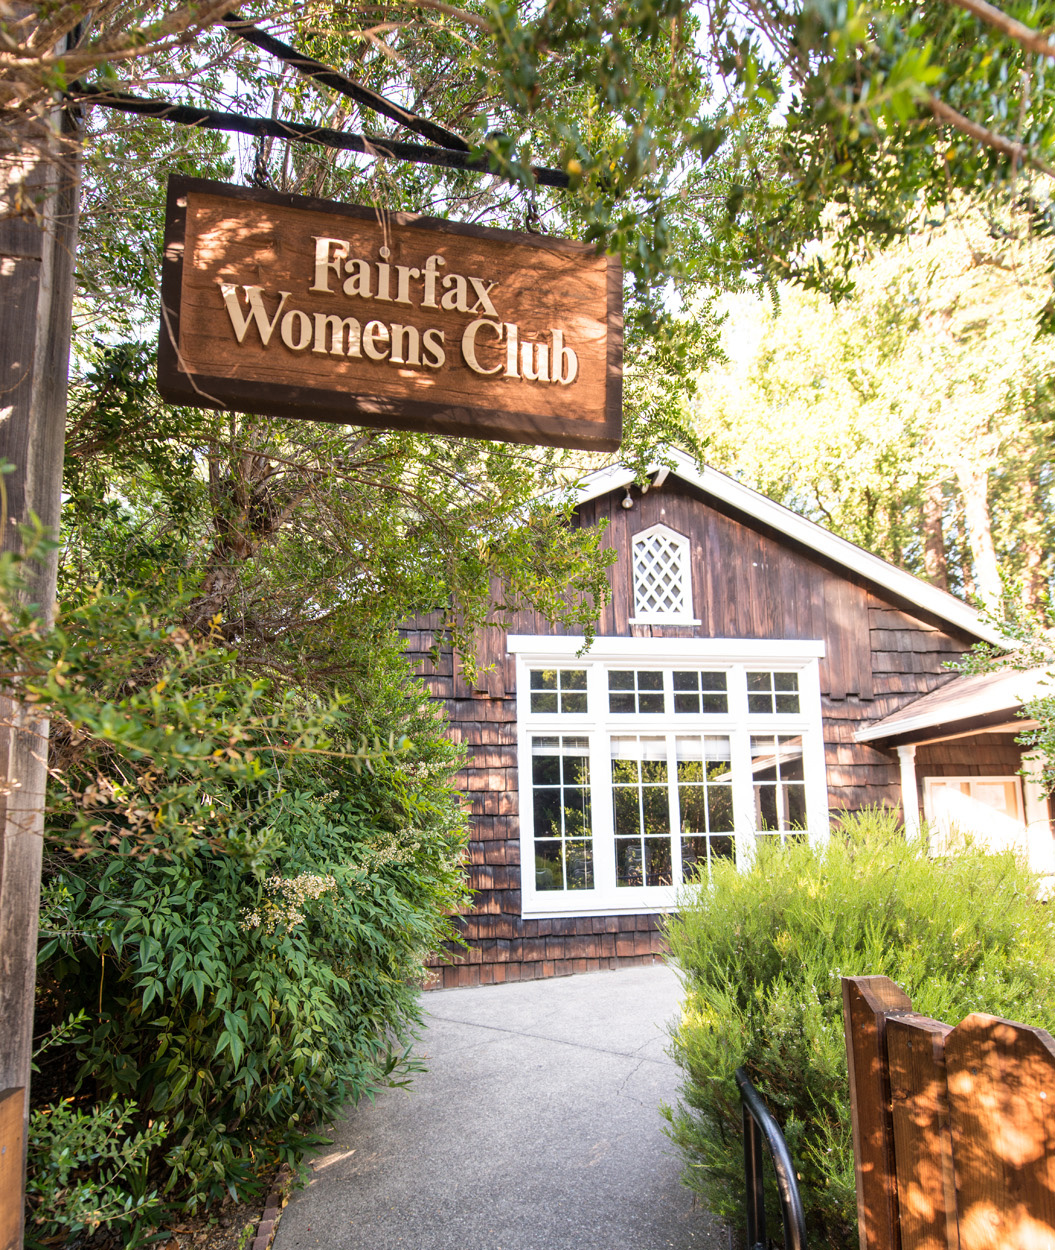 Fairfax Women's Club 2